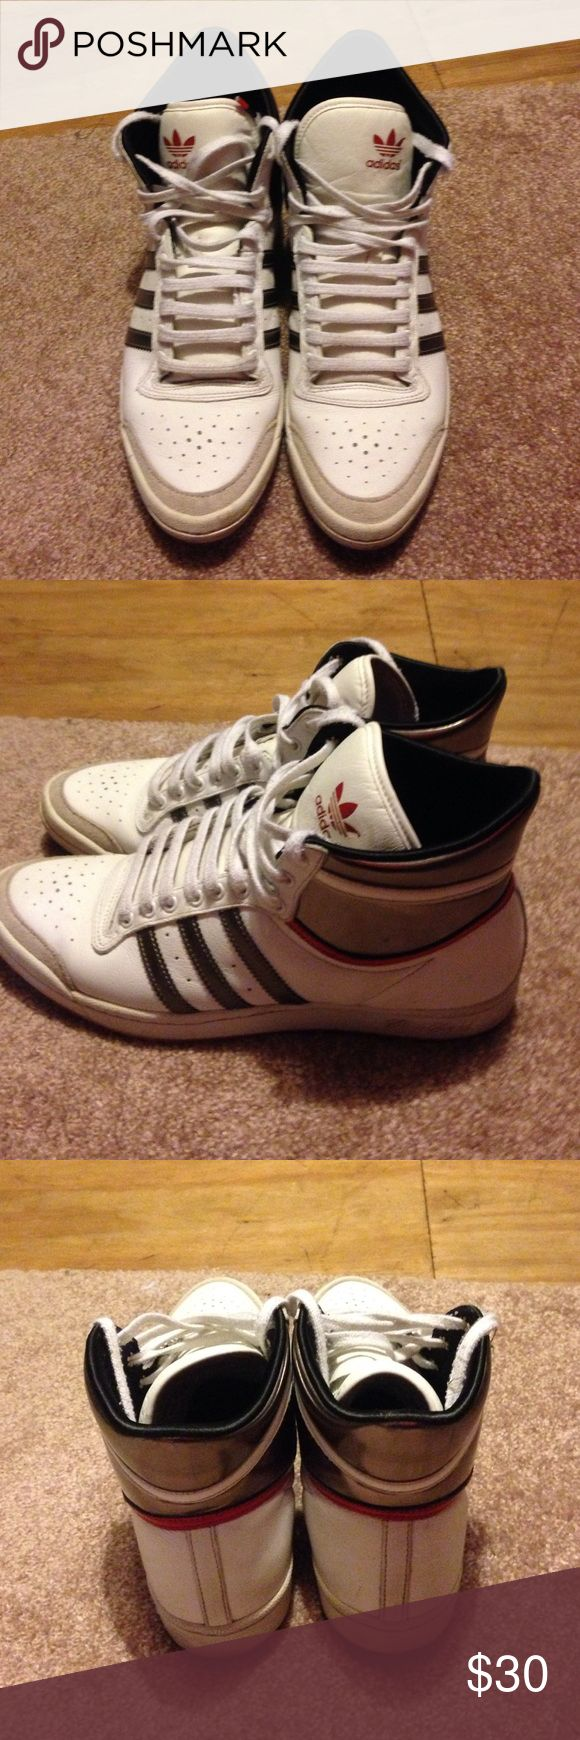 Adidas tennis shoes. In good condition . Adidas Sleek series tennis shoe. Size 8. Adidas Shoes Sneakers